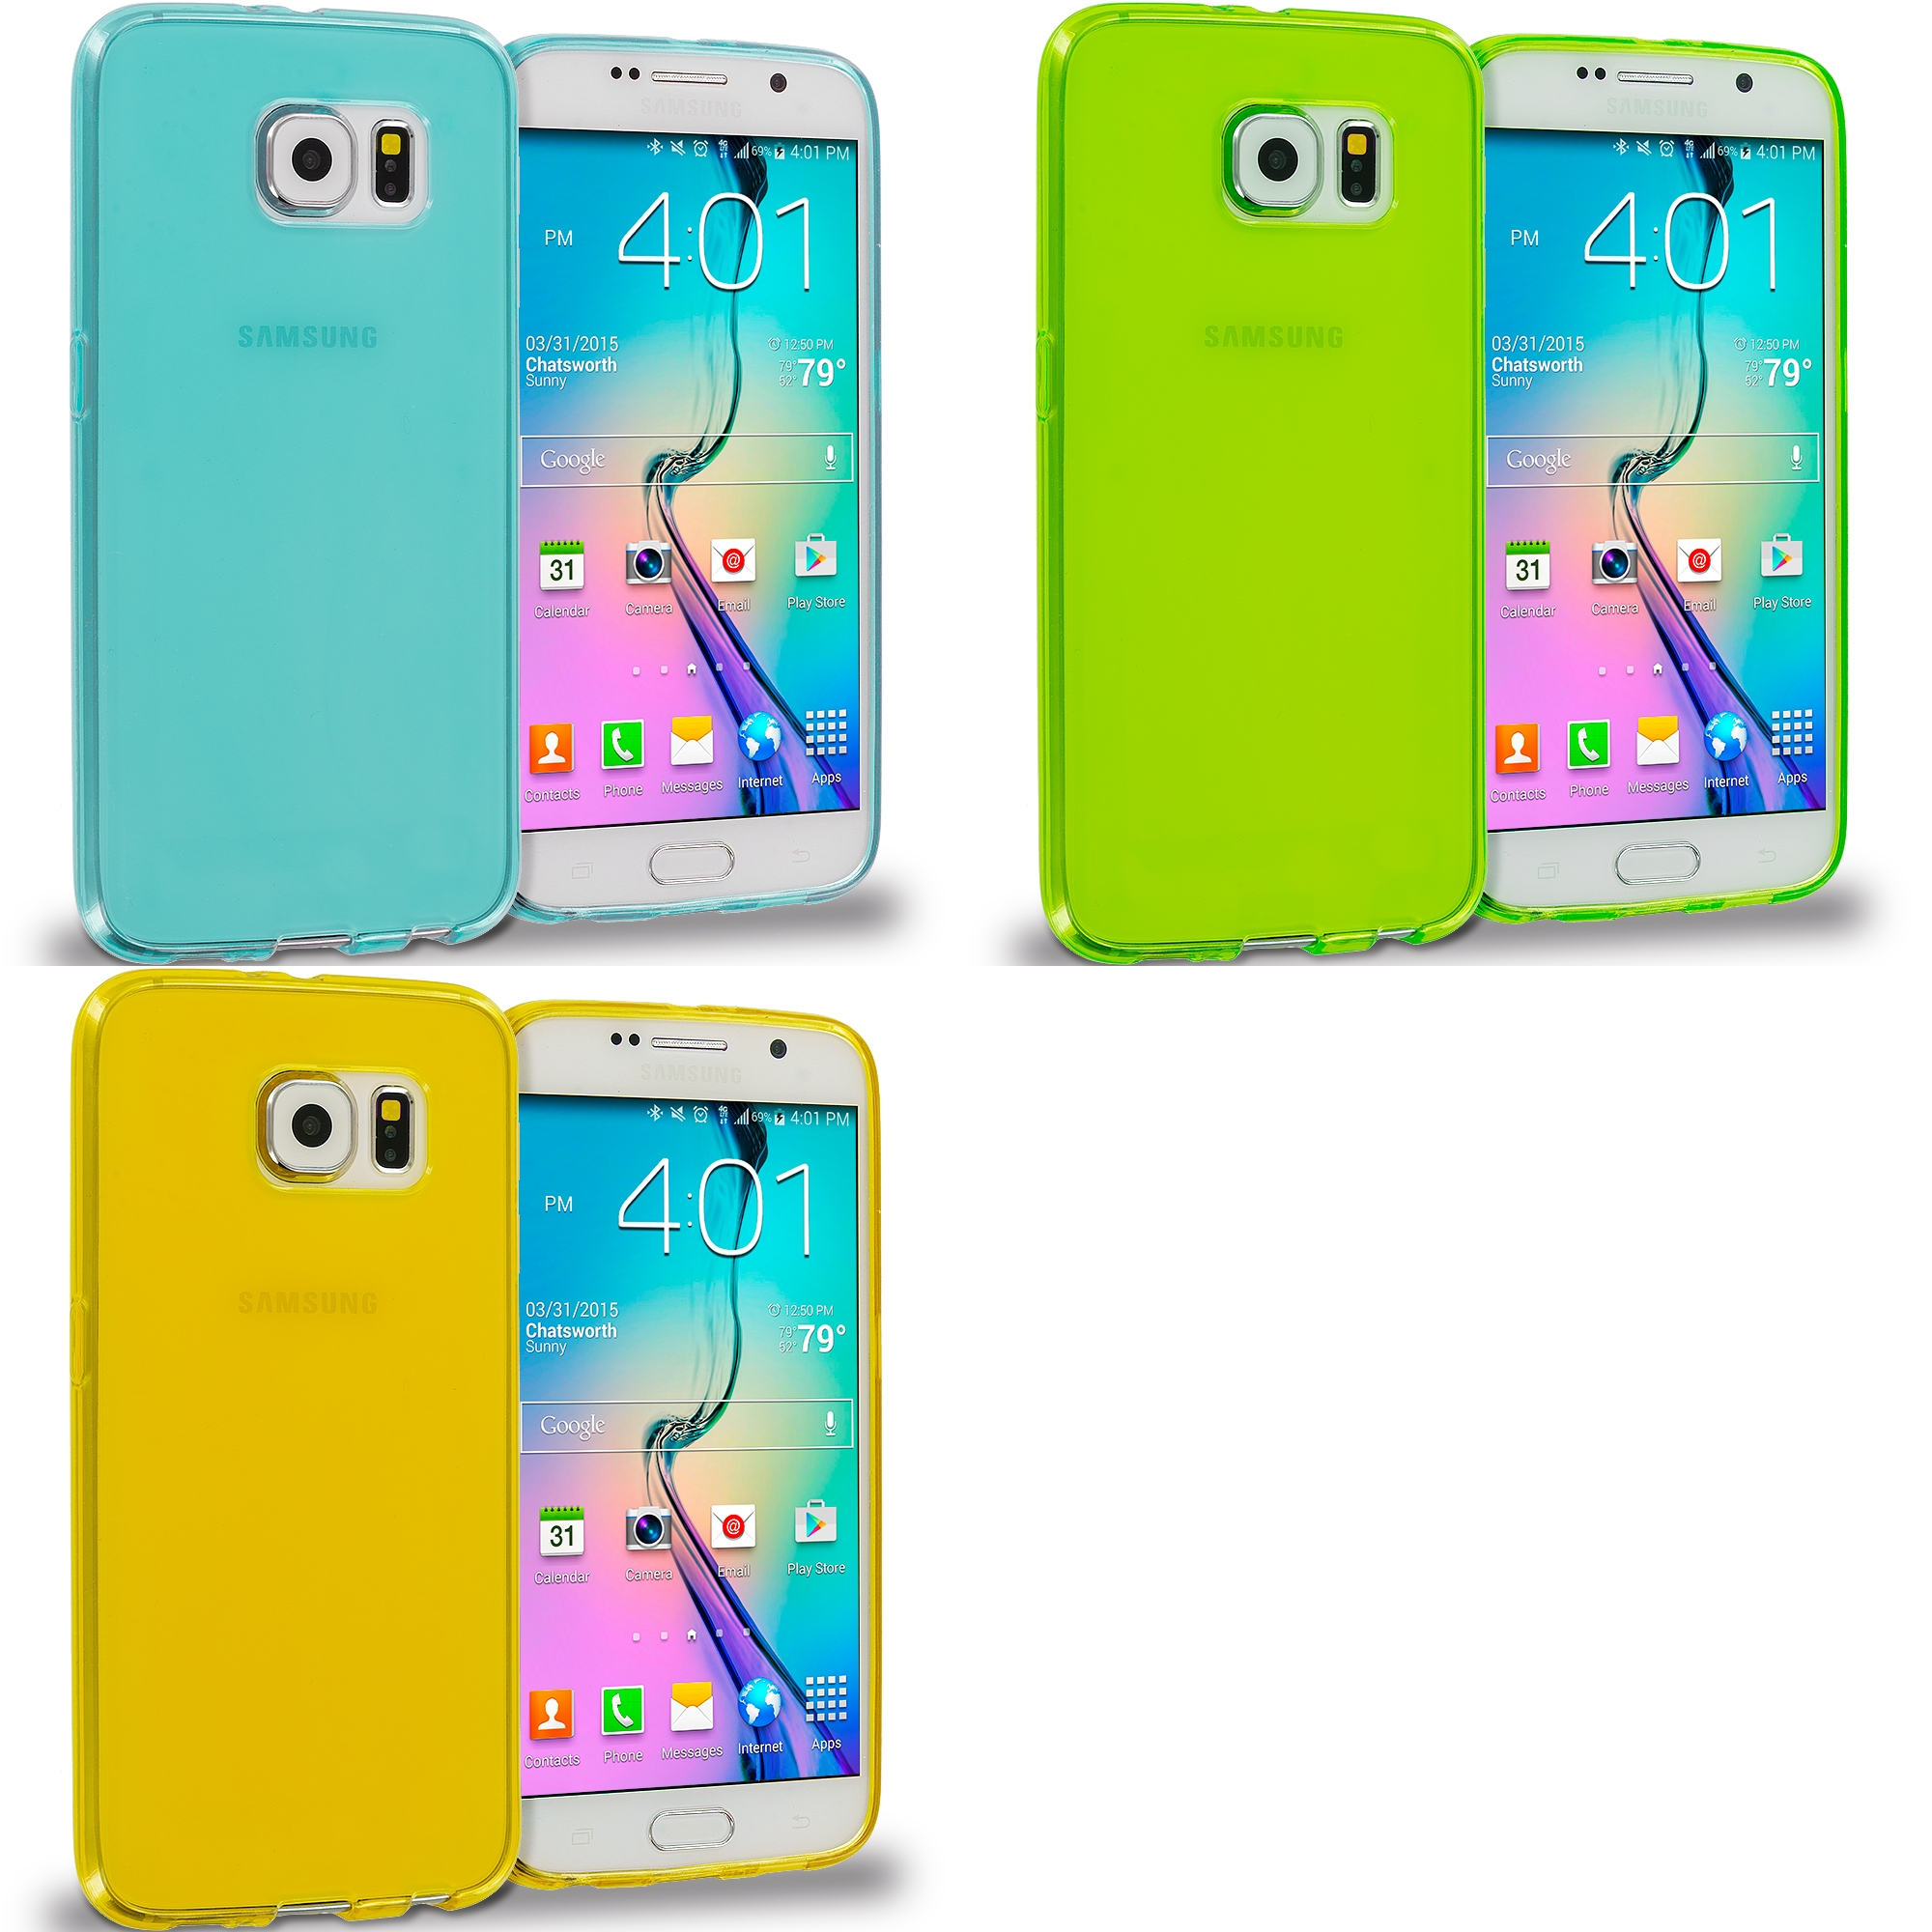 Samsung Galaxy S6 Combo Pack : Mint Green Plain TPU Rubber Skin Case Cover